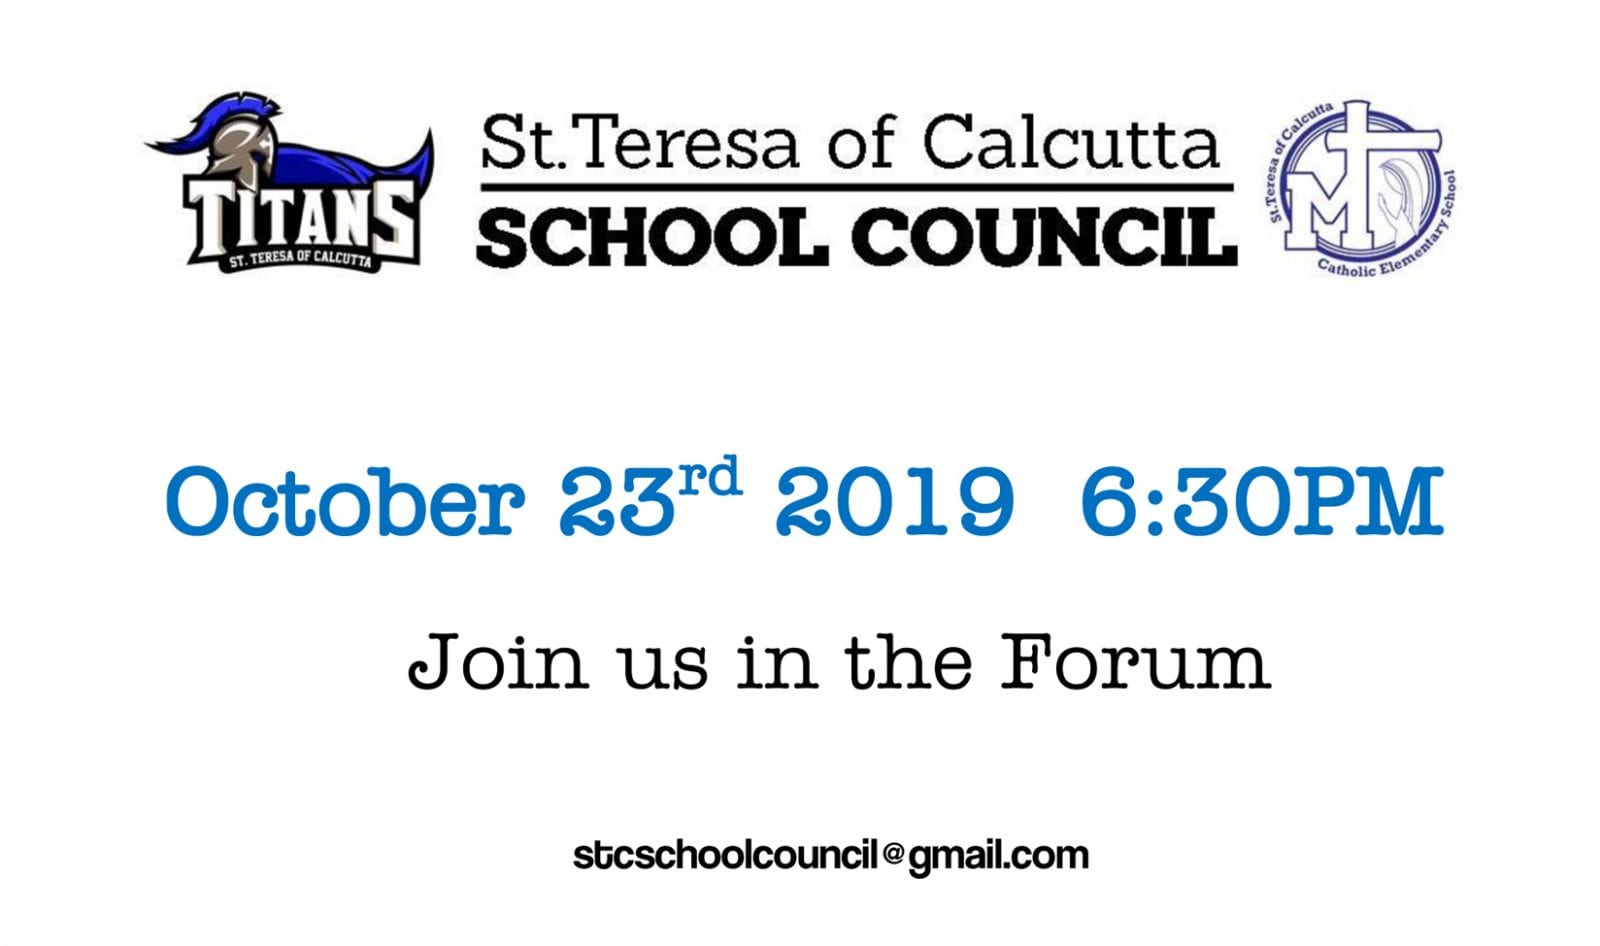 School Council Meeting: October 23rd